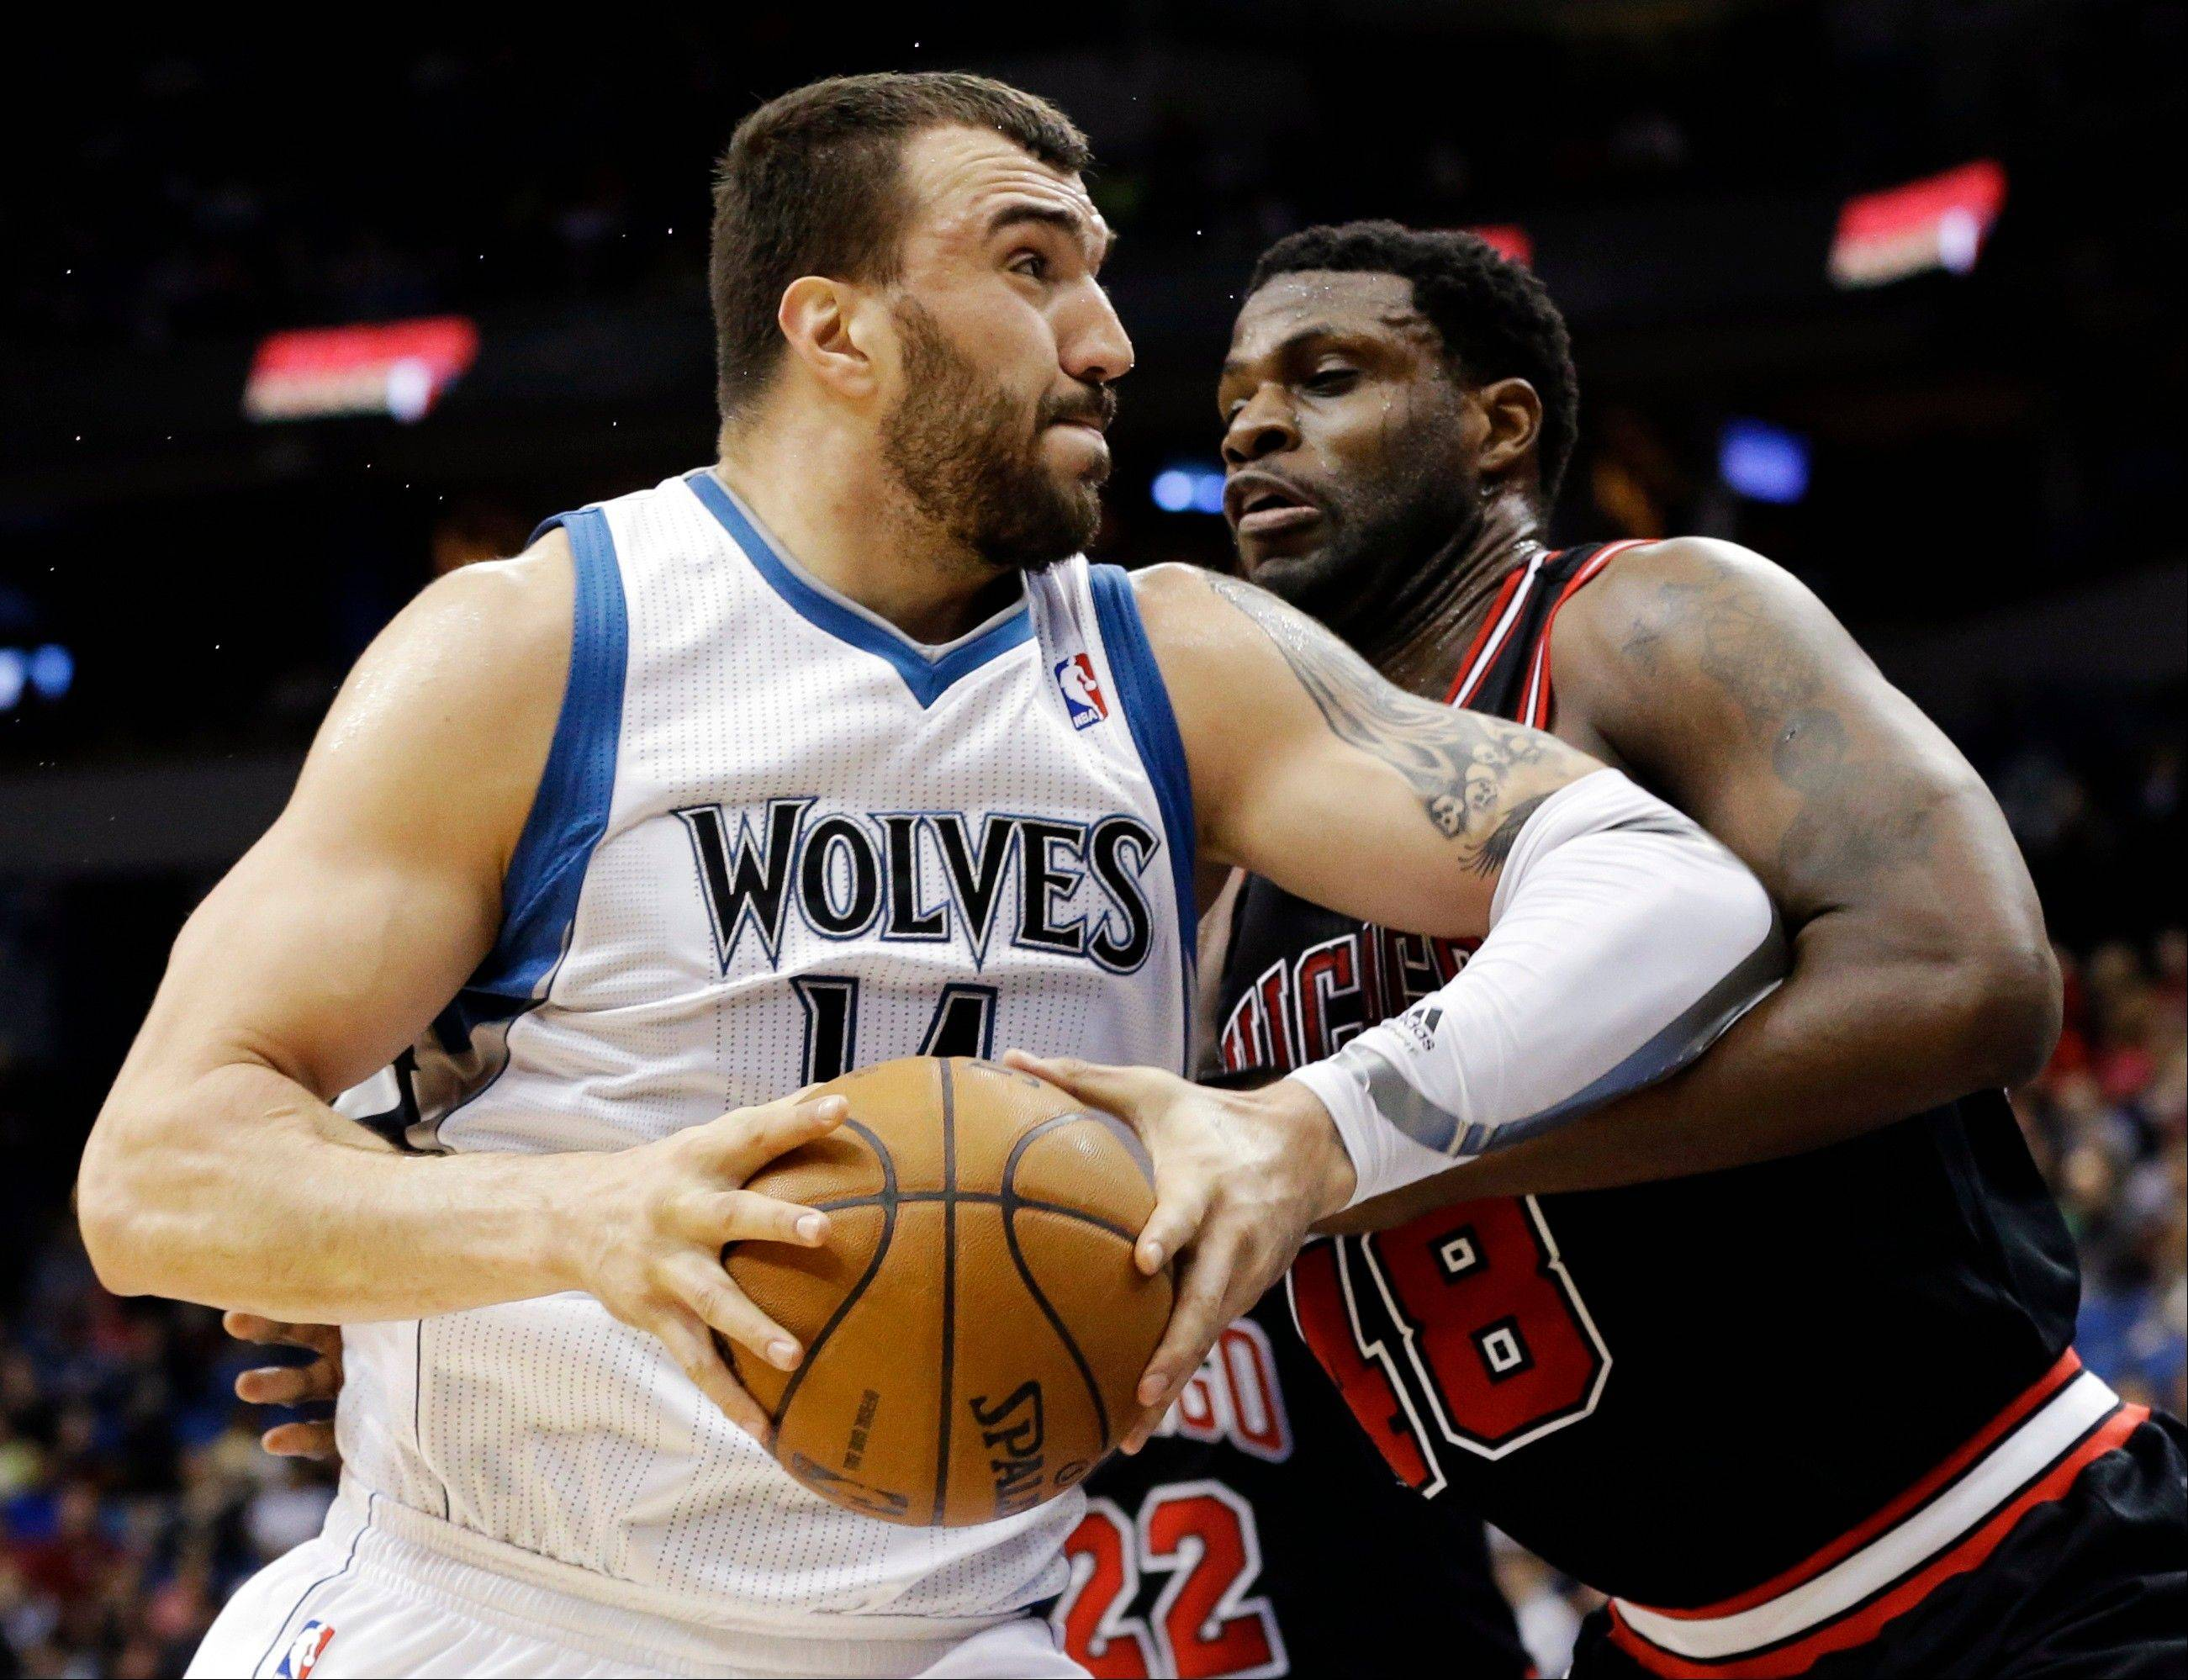 Minnesota Timberwolves' Nikola Pekovic, left, of Montenegro, drives against the Bulls' Nazr Mohammed in the first quarter of an NBA basketball game, Sunday, March 24, 2013, in Minneapolis.